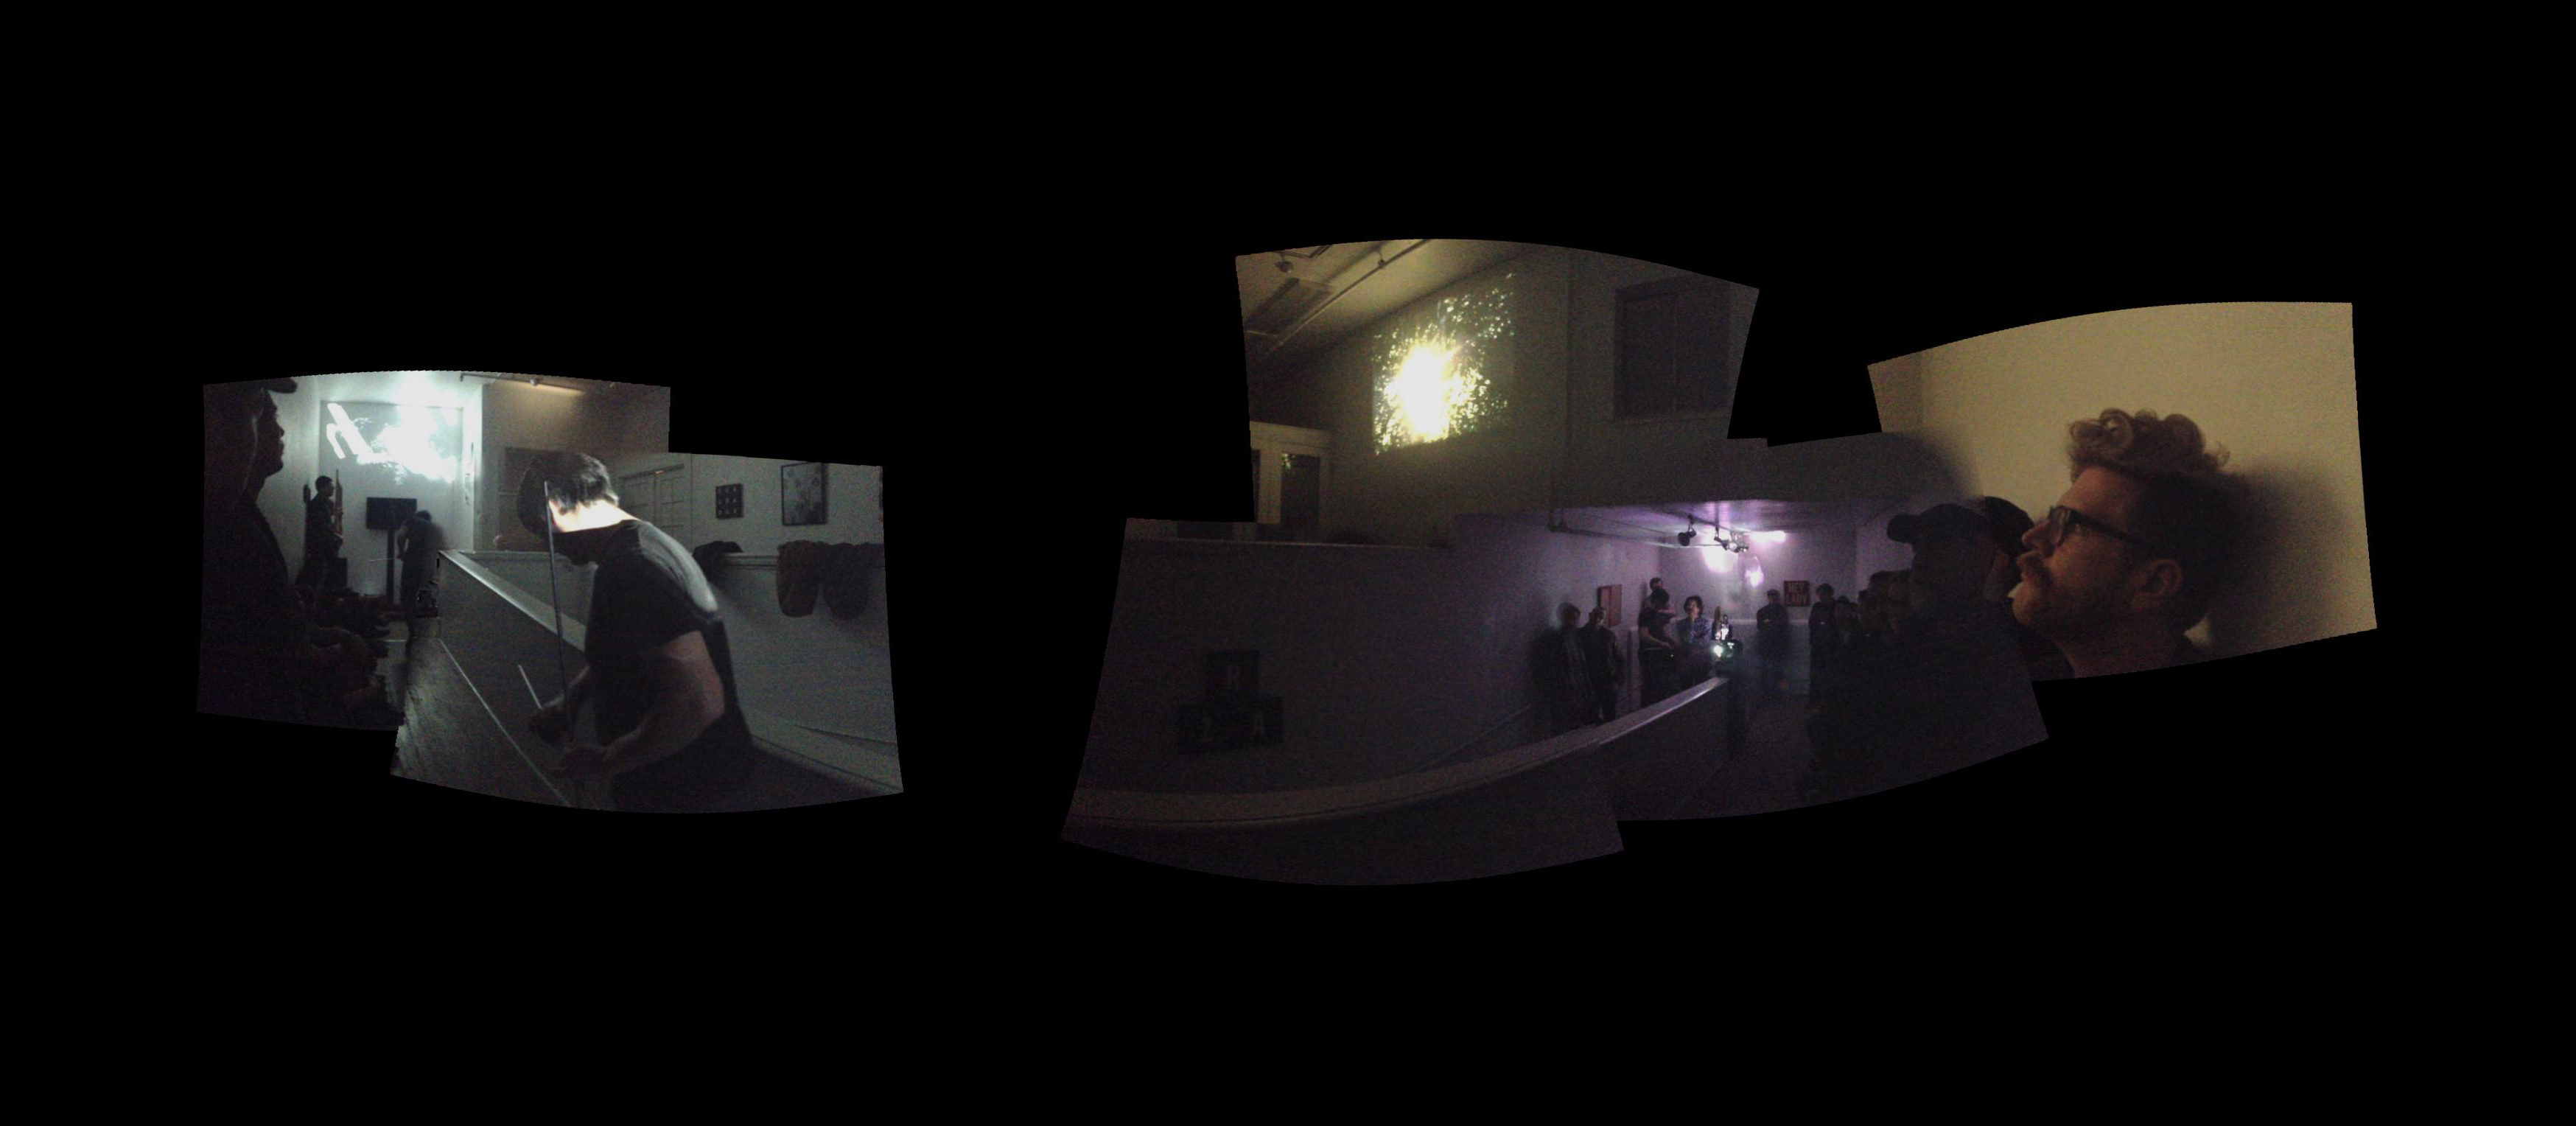 """Performance by Ashley Boullin and Ben Bracken in conjunction with the film """"Pulsars E Quasars"""" by Paul Clipson at Incline Gallery. Image courtesy of Mark Wilson."""